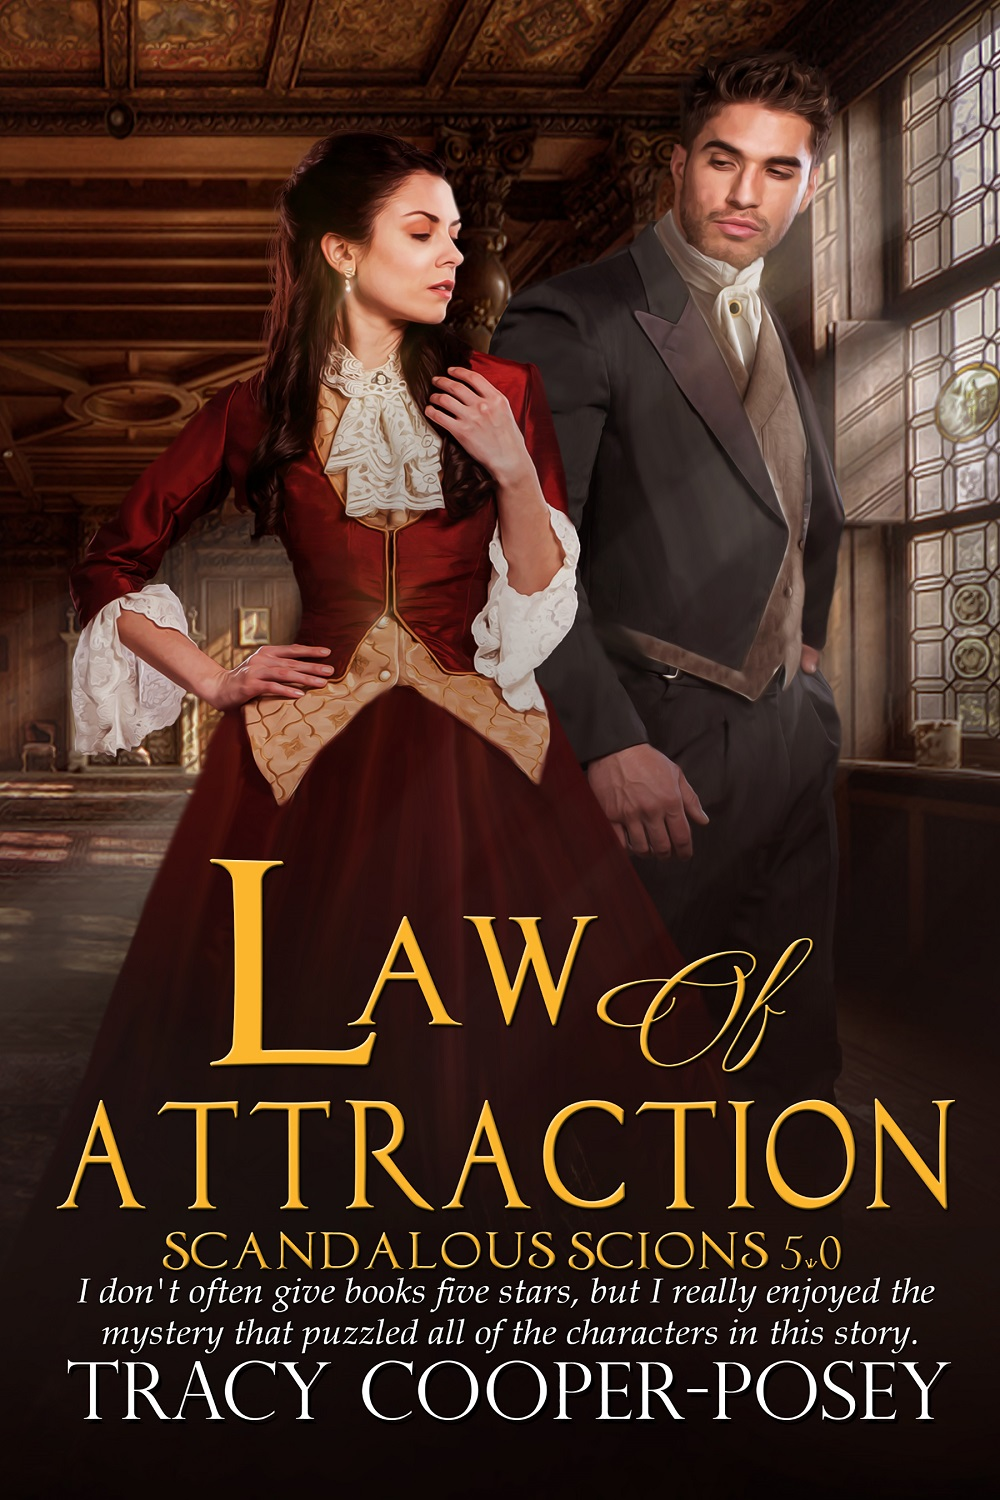 New Historical Victorian Romance now out!